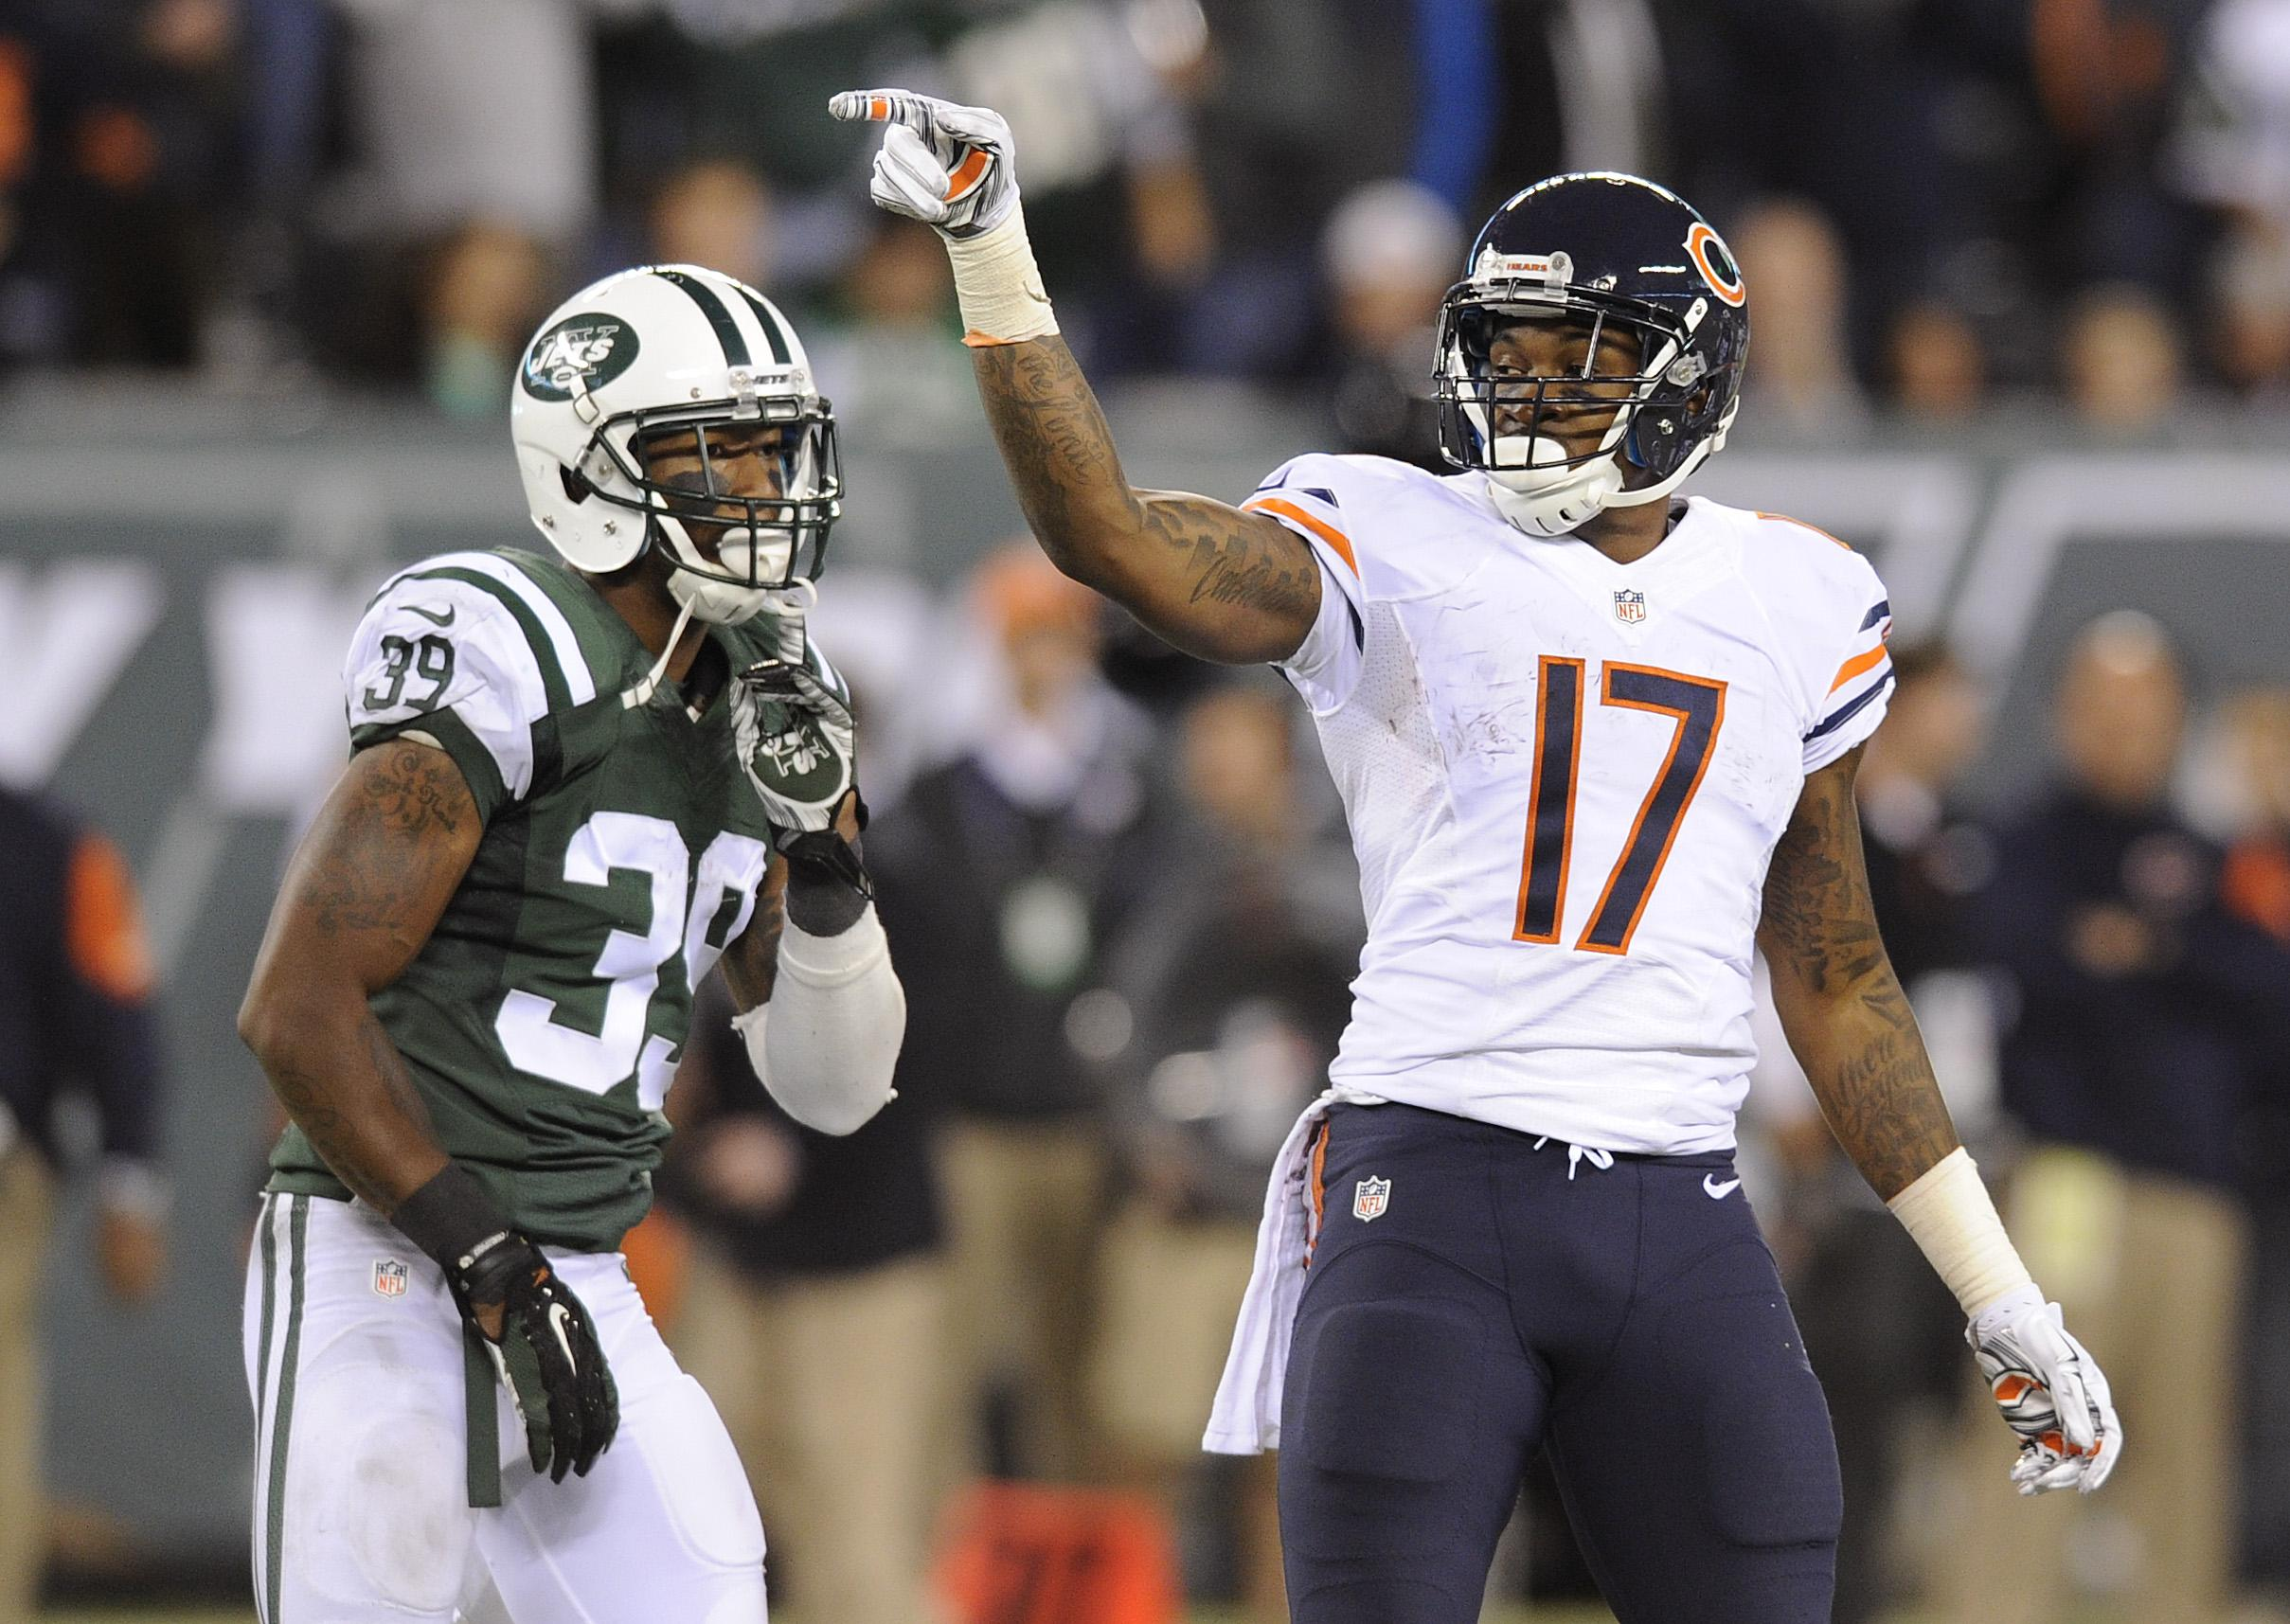 Four Wide Violation Suspended Chicago Games Ped Alshon Jeffery Bears - Times Washington For Receiver